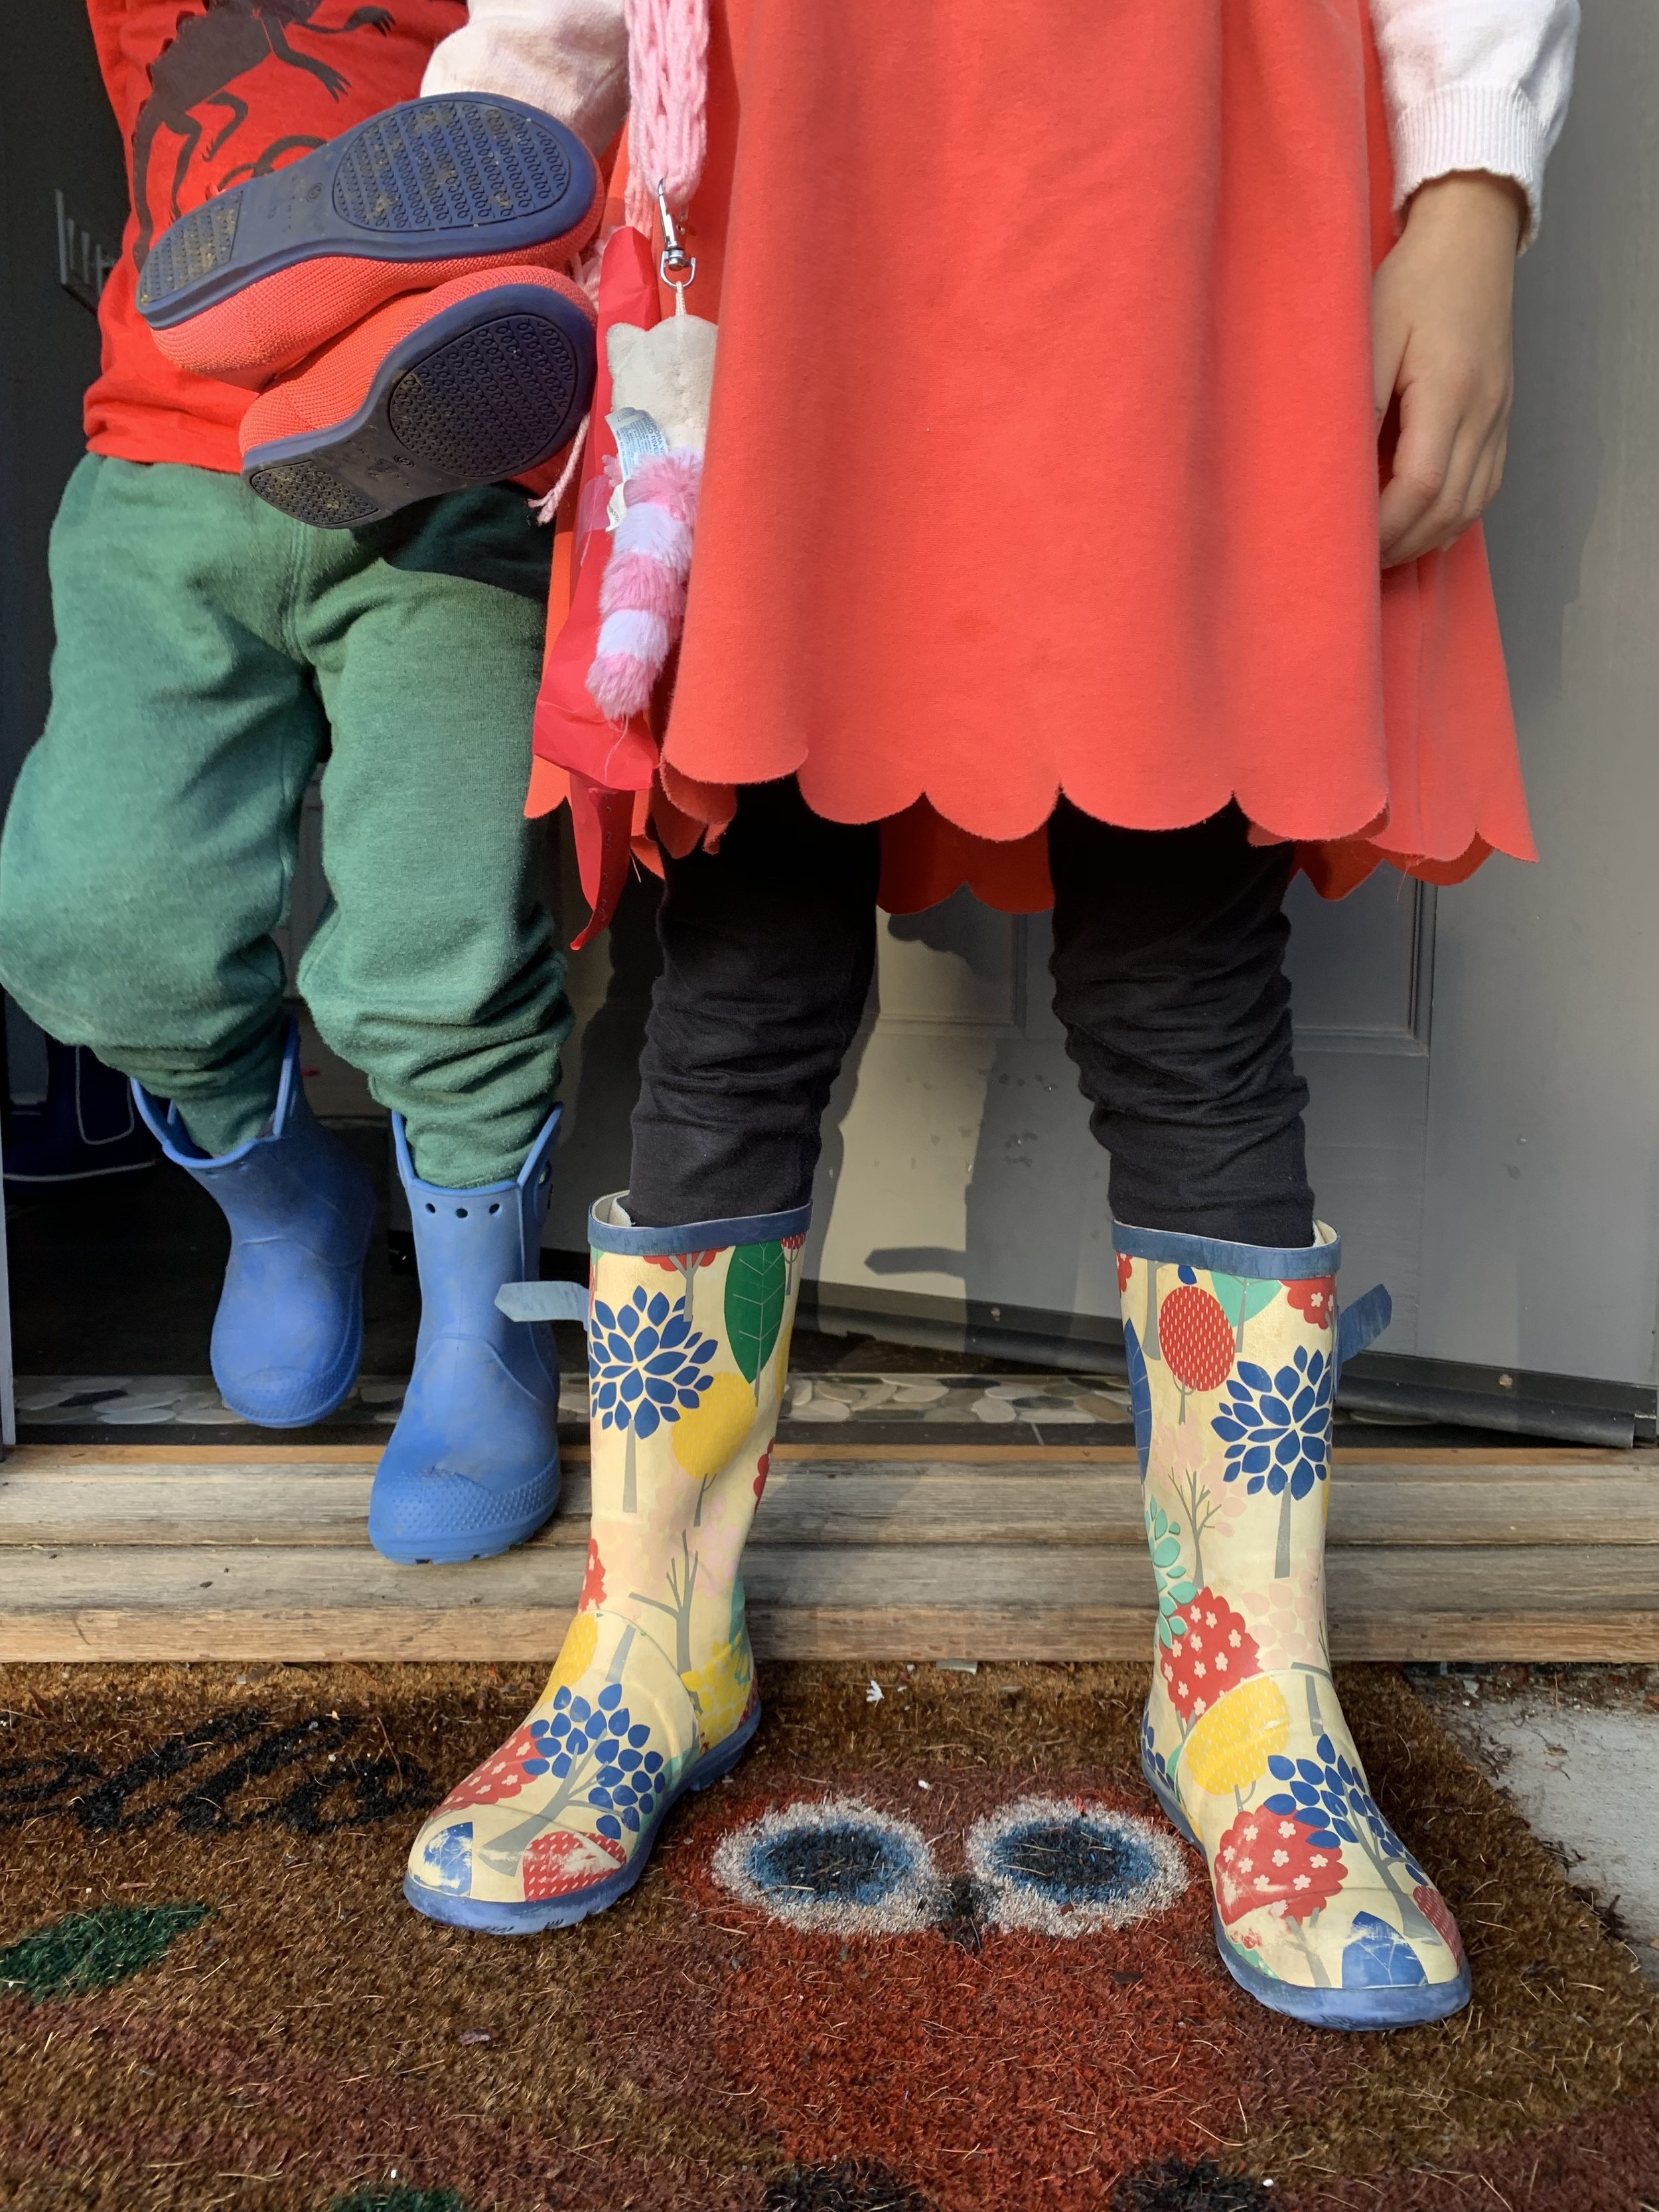 - My memories of growing up in the UK was set in the backdrop of gray and rain, which is why it's no surprise that the Brits nail the rain in style. Wellies (aka rain boots) come to mind. The most famous brain is of course Hunter (overpriced). Joules is another well-known UK brand that makes cute wellies. Given most days are gloomy over there, it's no wonder they try to bring the sunshine through their boots. Gotta love the navy raining dogs design. Boots are tall enough for even the deepest puddles - as reported by Emmy!